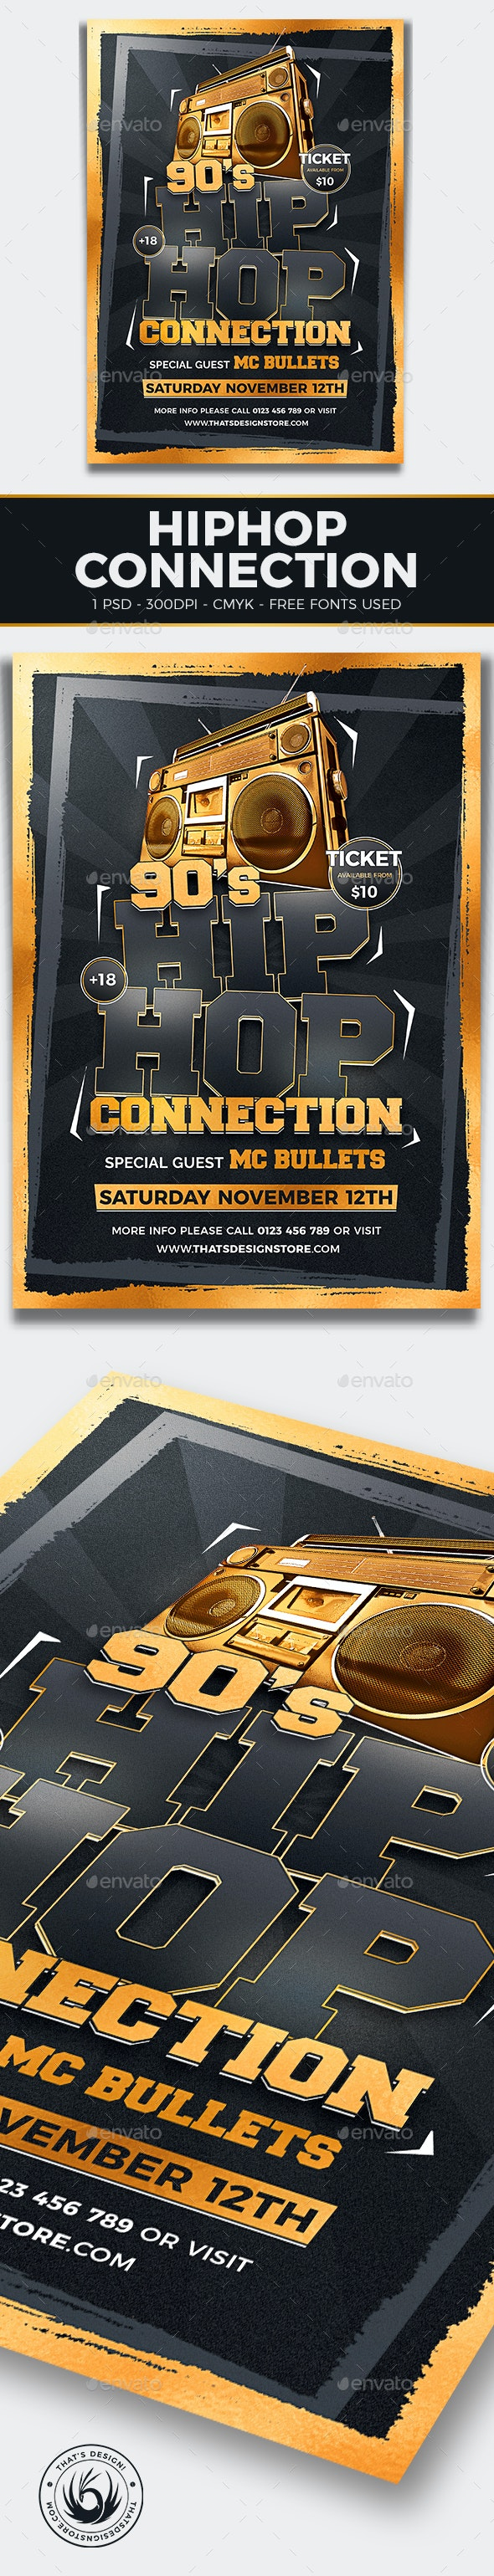 Hip Hop Connection Flyer Template V2 - Clubs & Parties Events